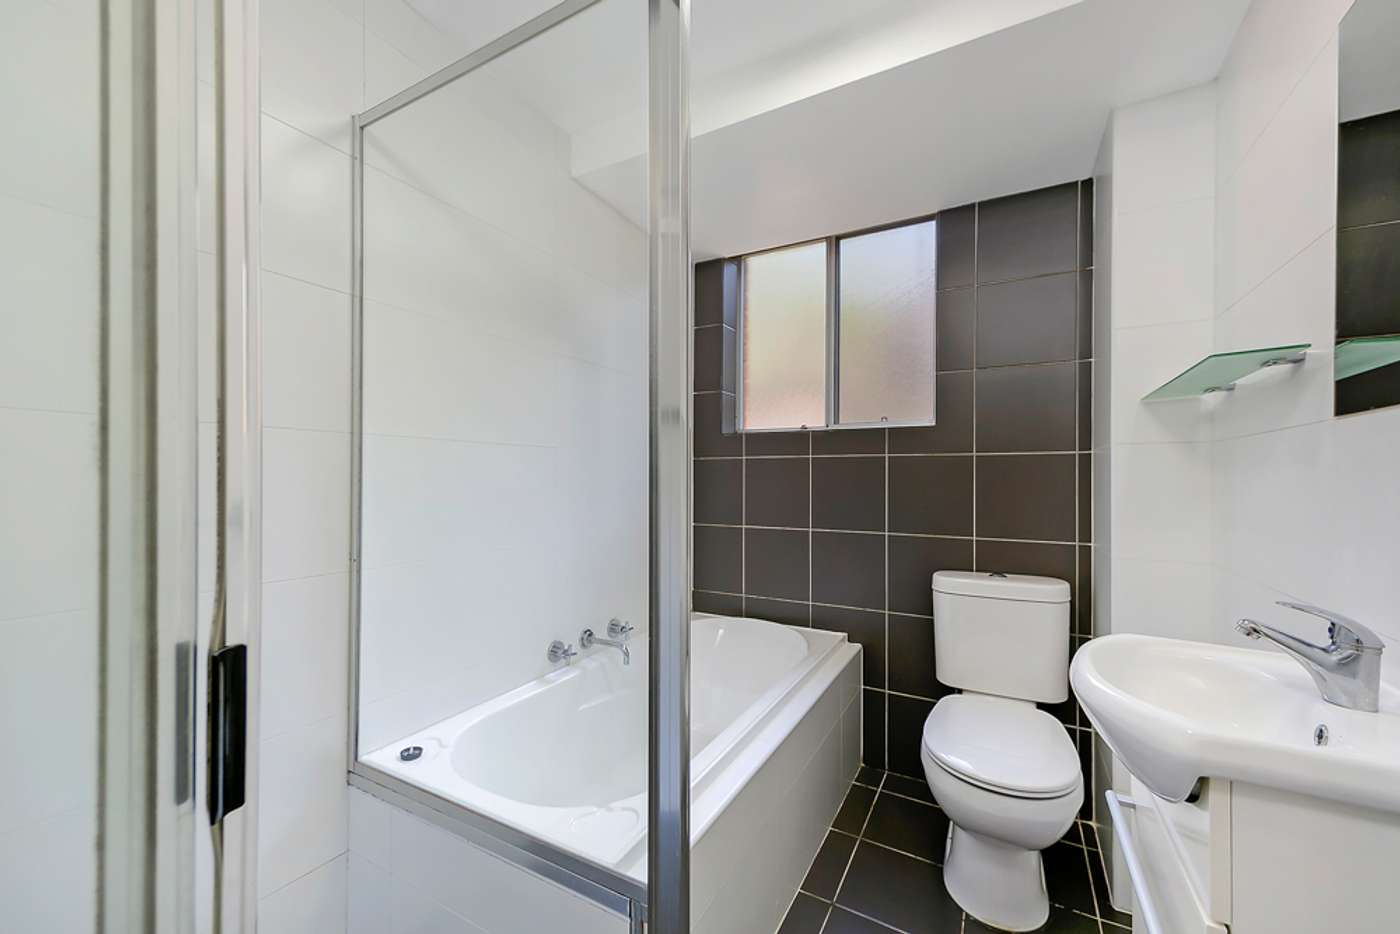 Fifth view of Homely unit listing, 4/5-7 Riverview Street, West Ryde NSW 2114